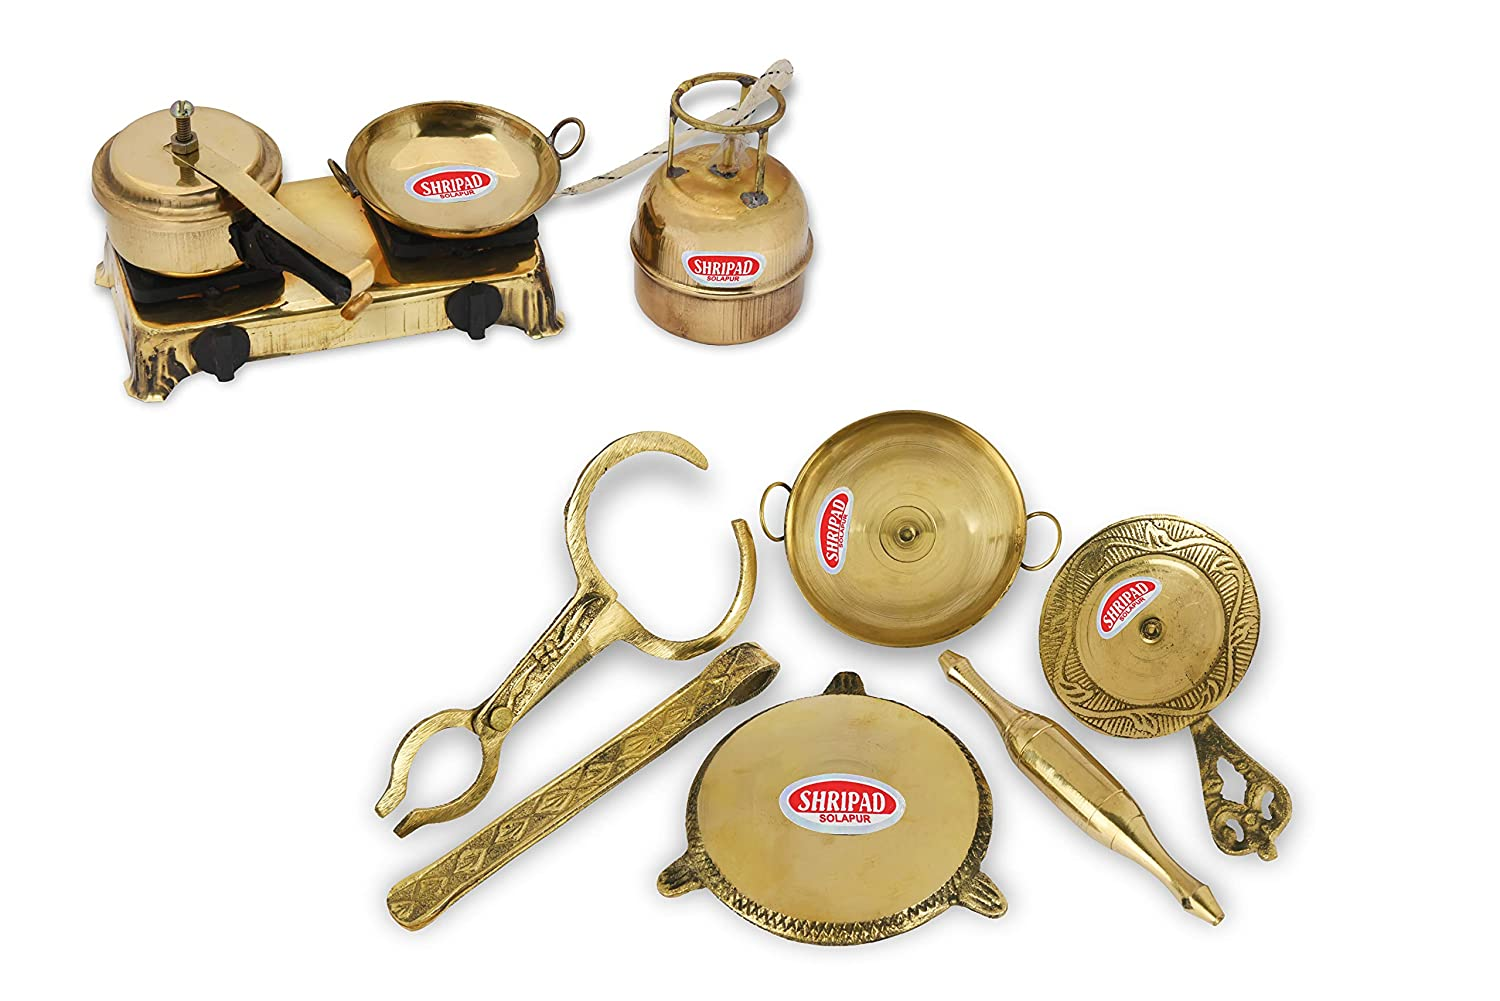 TINY SOULS Brass Miniature Toy | Gas Stove +Roti Maker | A Combo Set For Kids (Free Size)